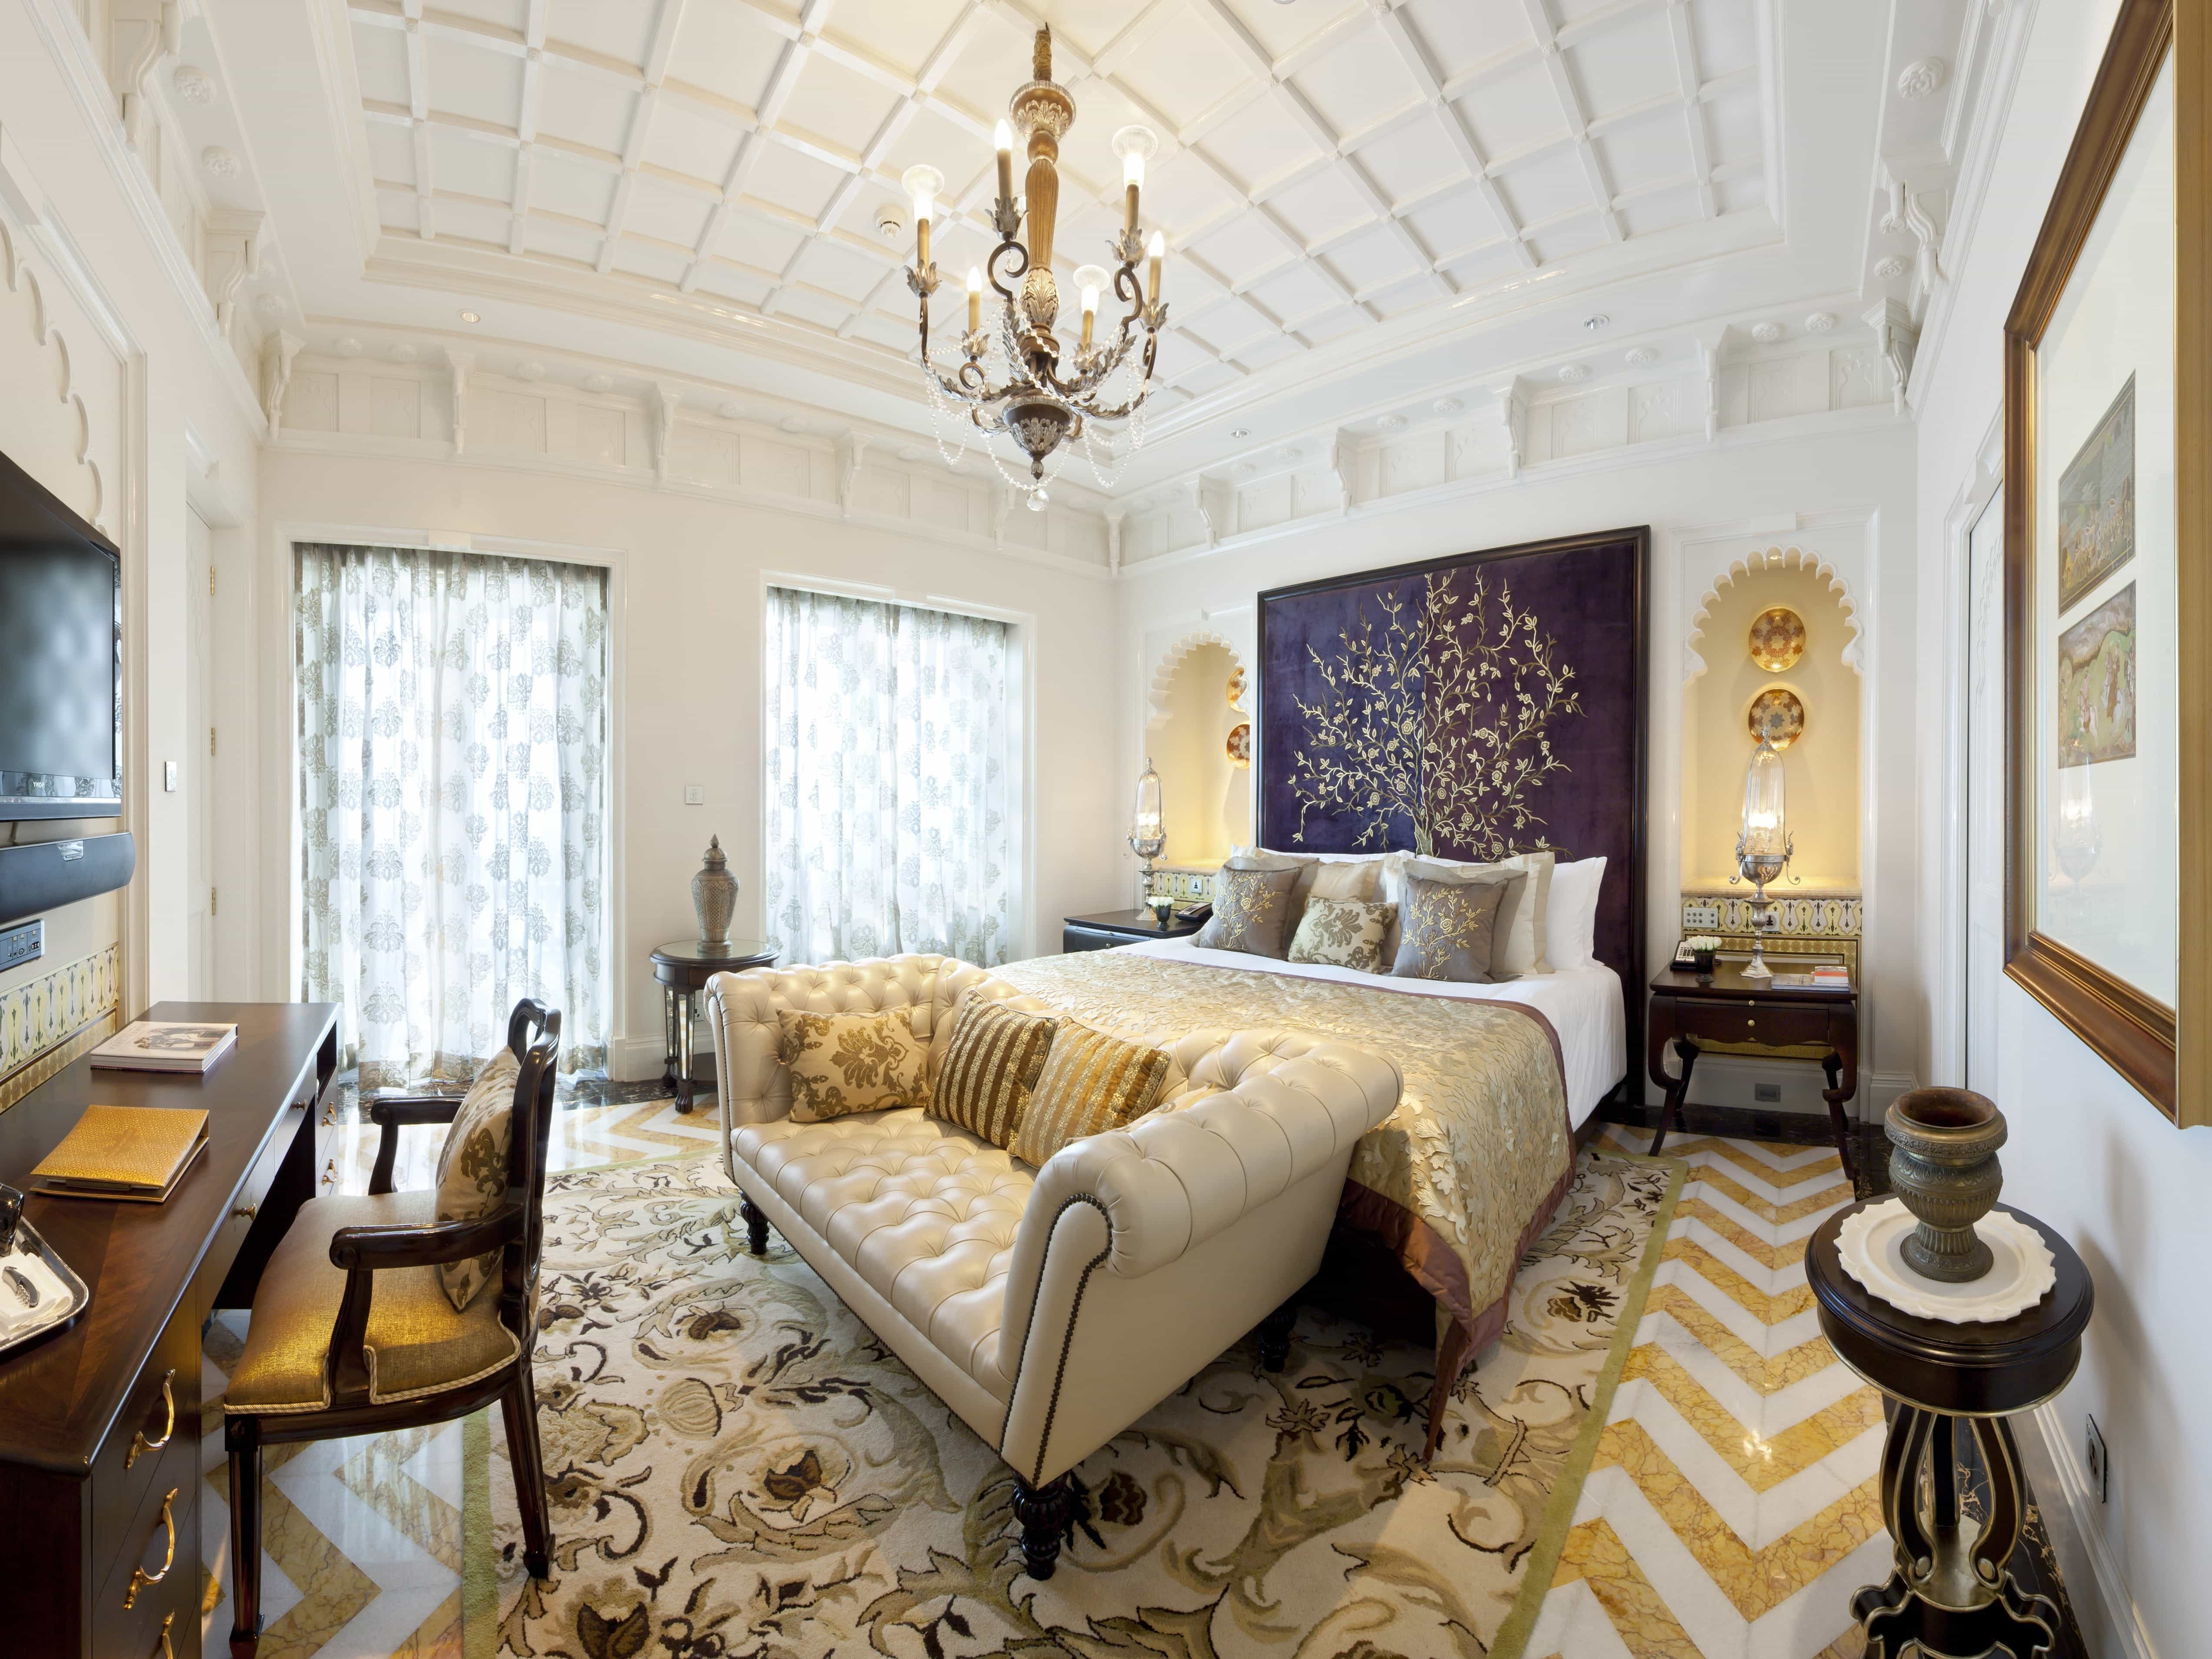 Luxury Bedroom Decoration In Classic Style  (Image 17 of 28)